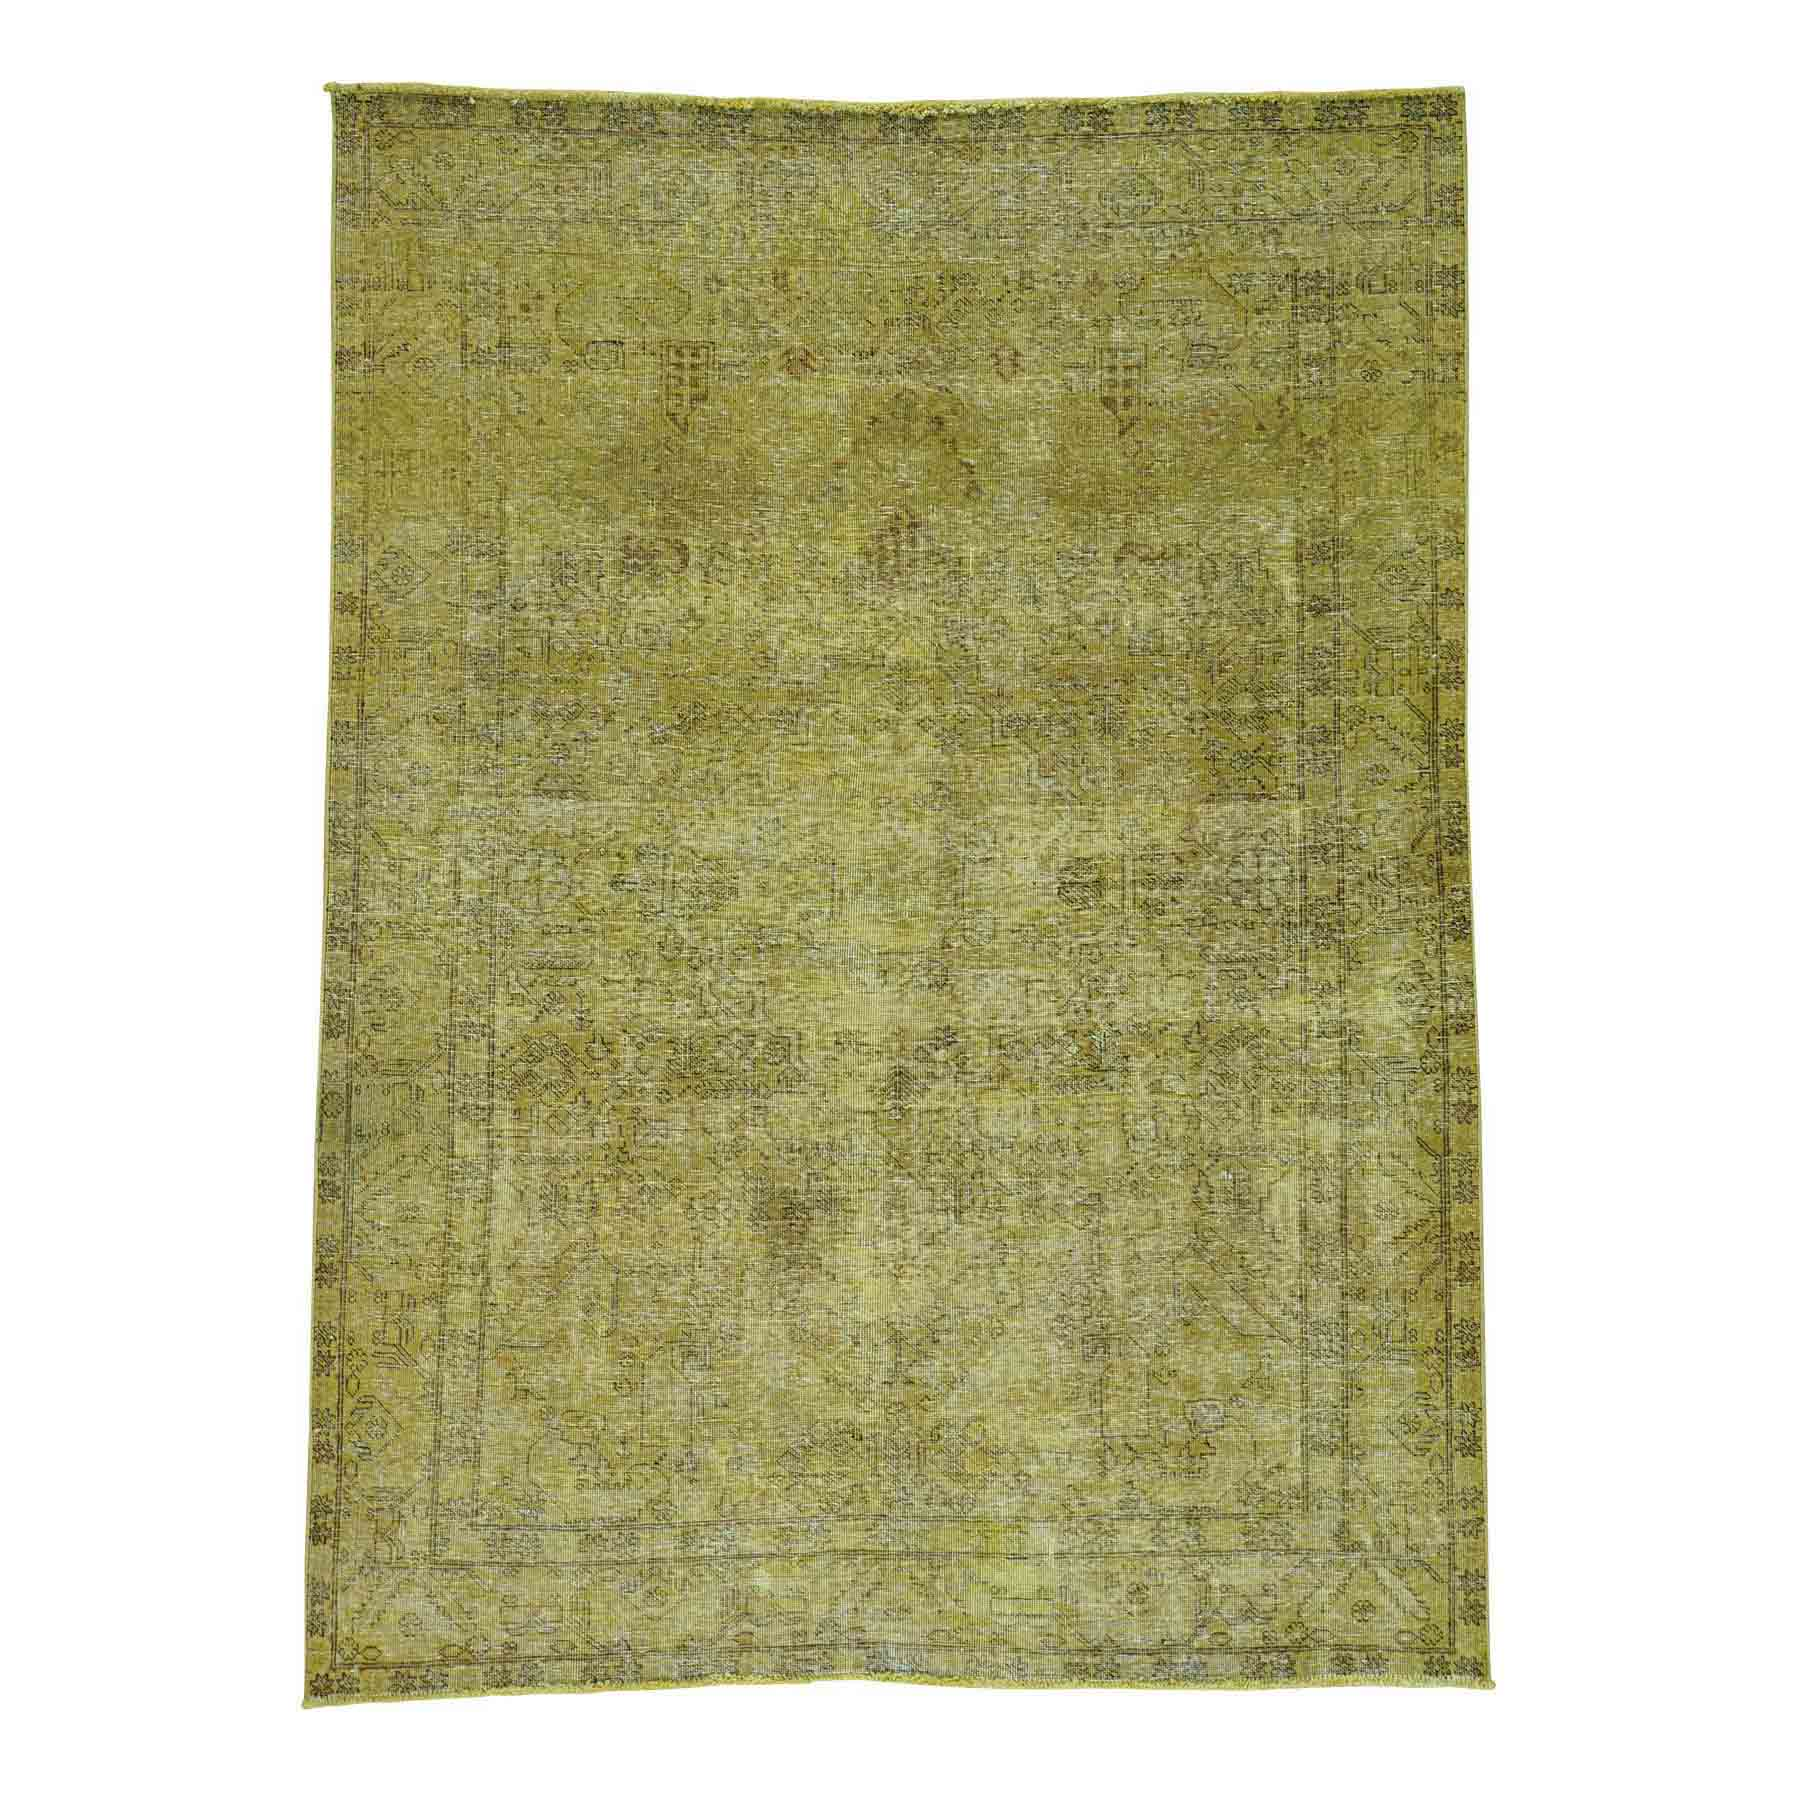 Overdyed-Vintage-Hand-Knotted-Rug-121750